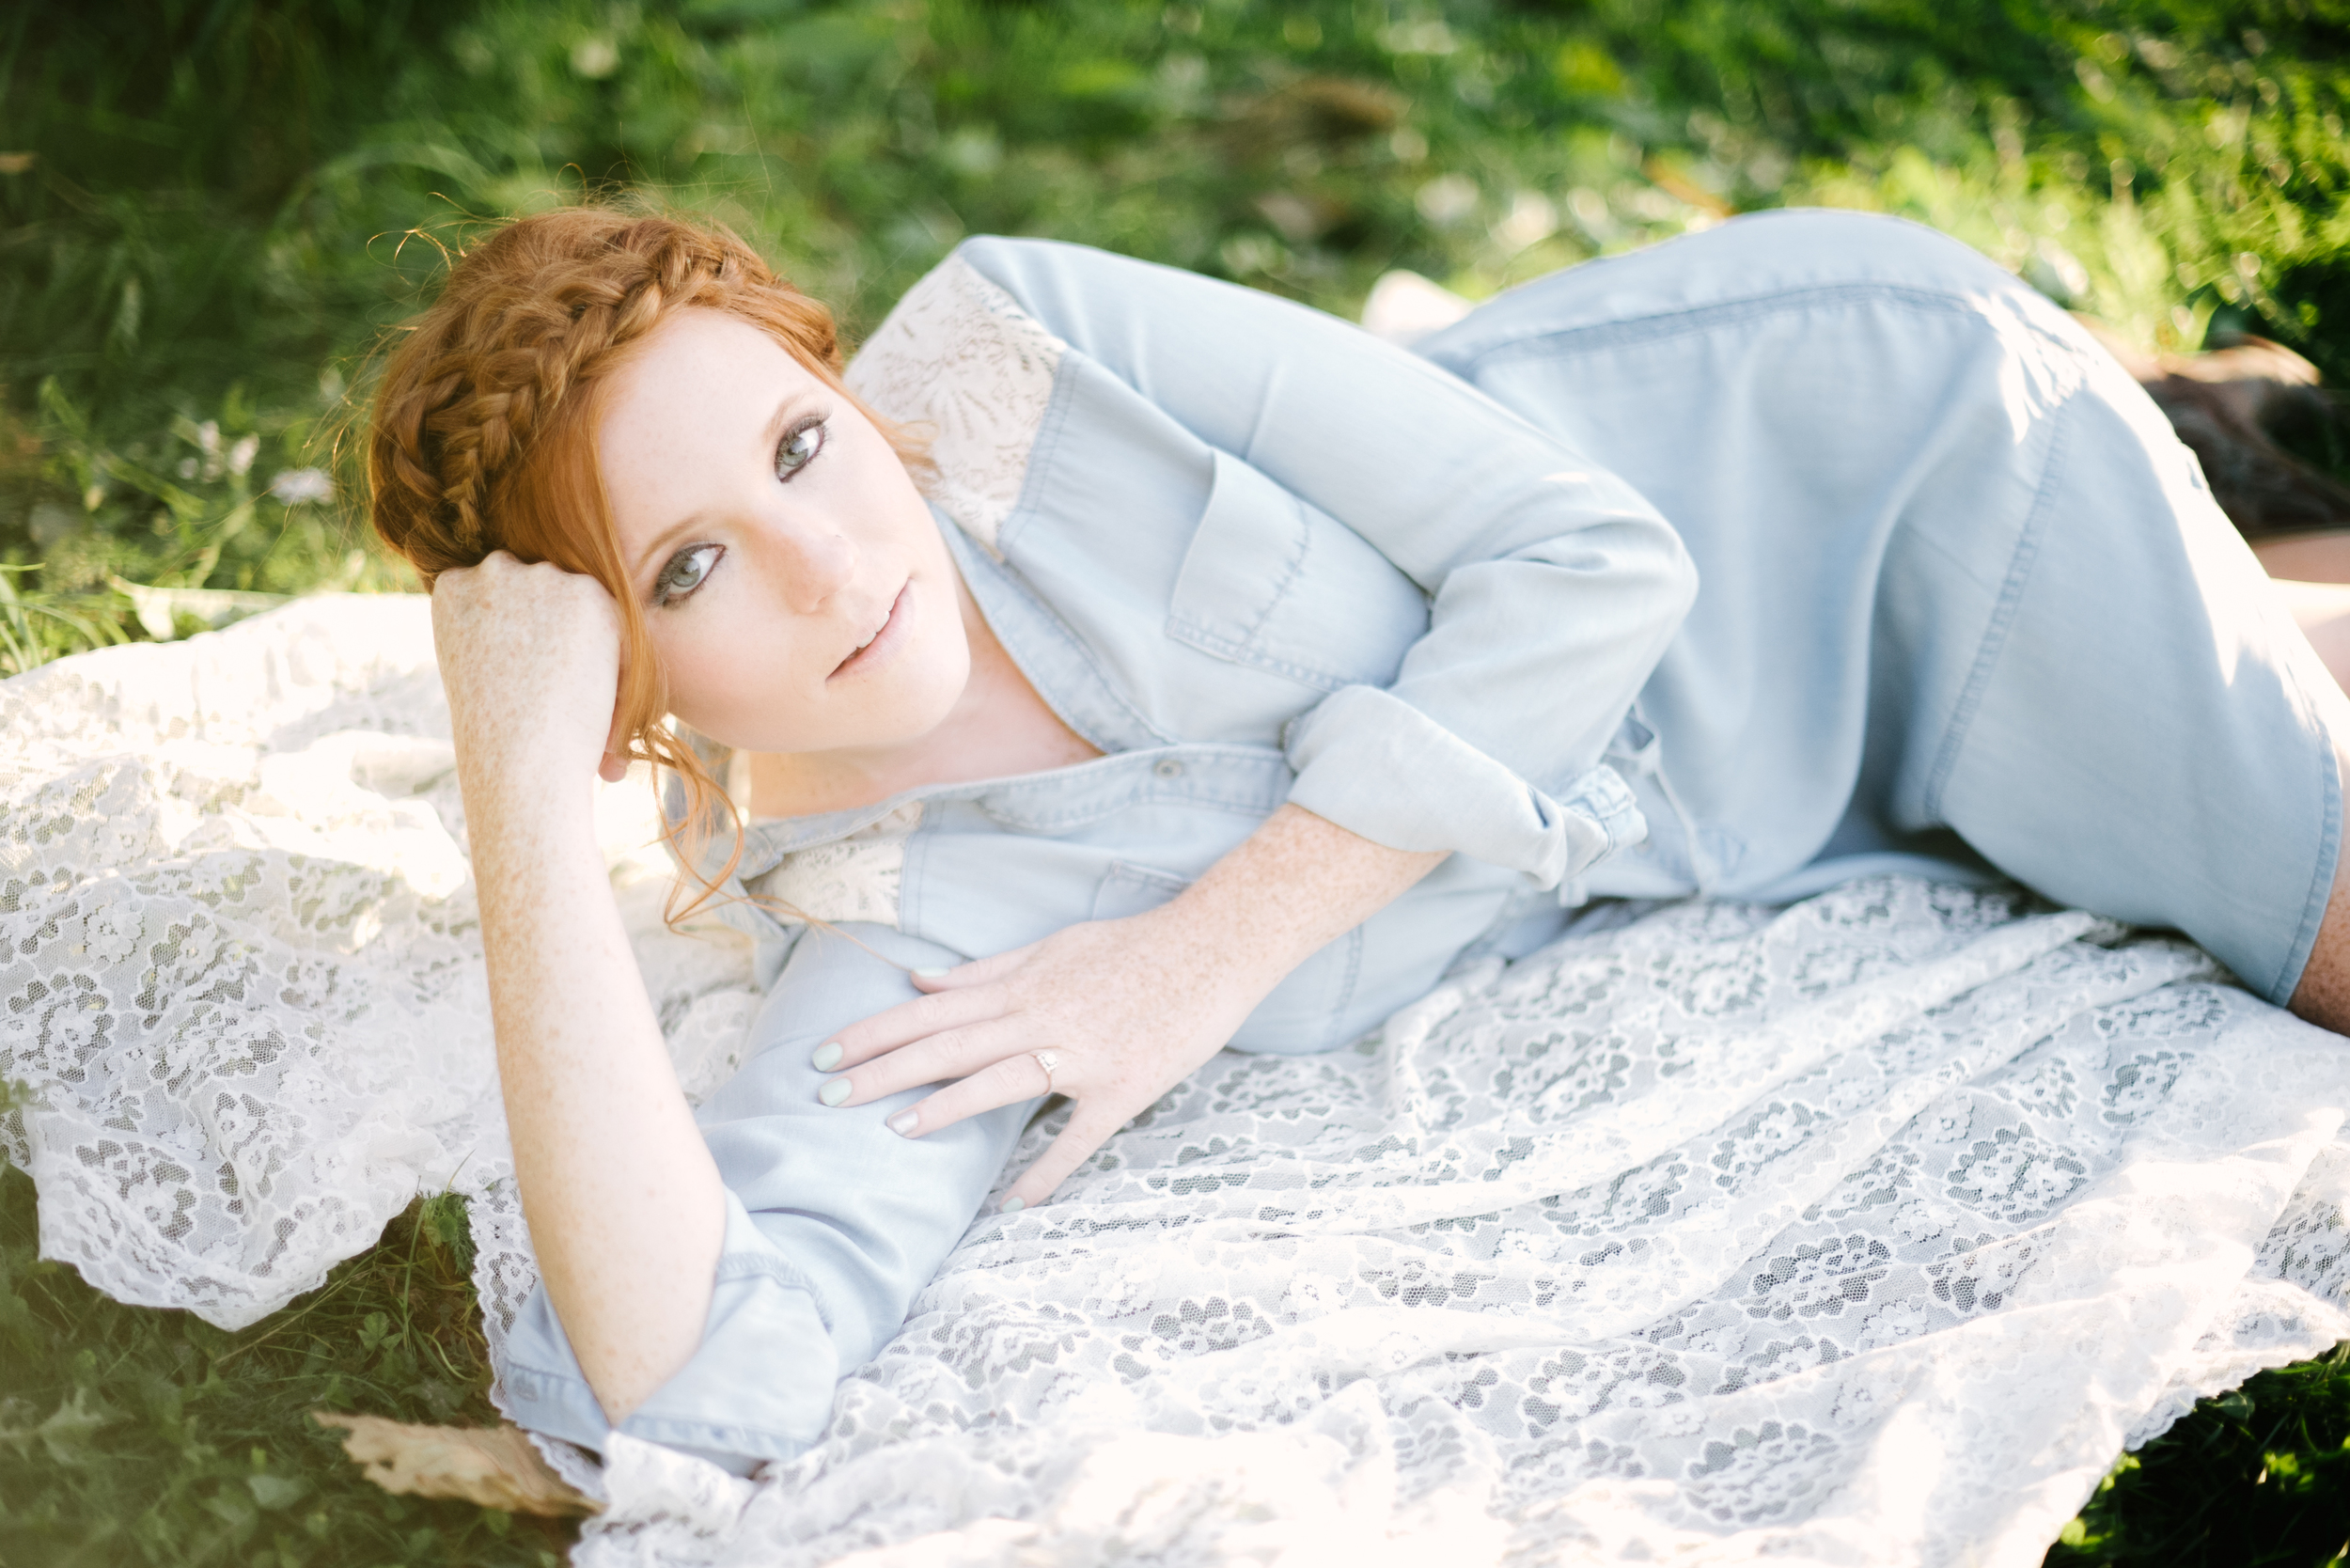 edgefield_engagement_fashion_photography_christa_taylor-188